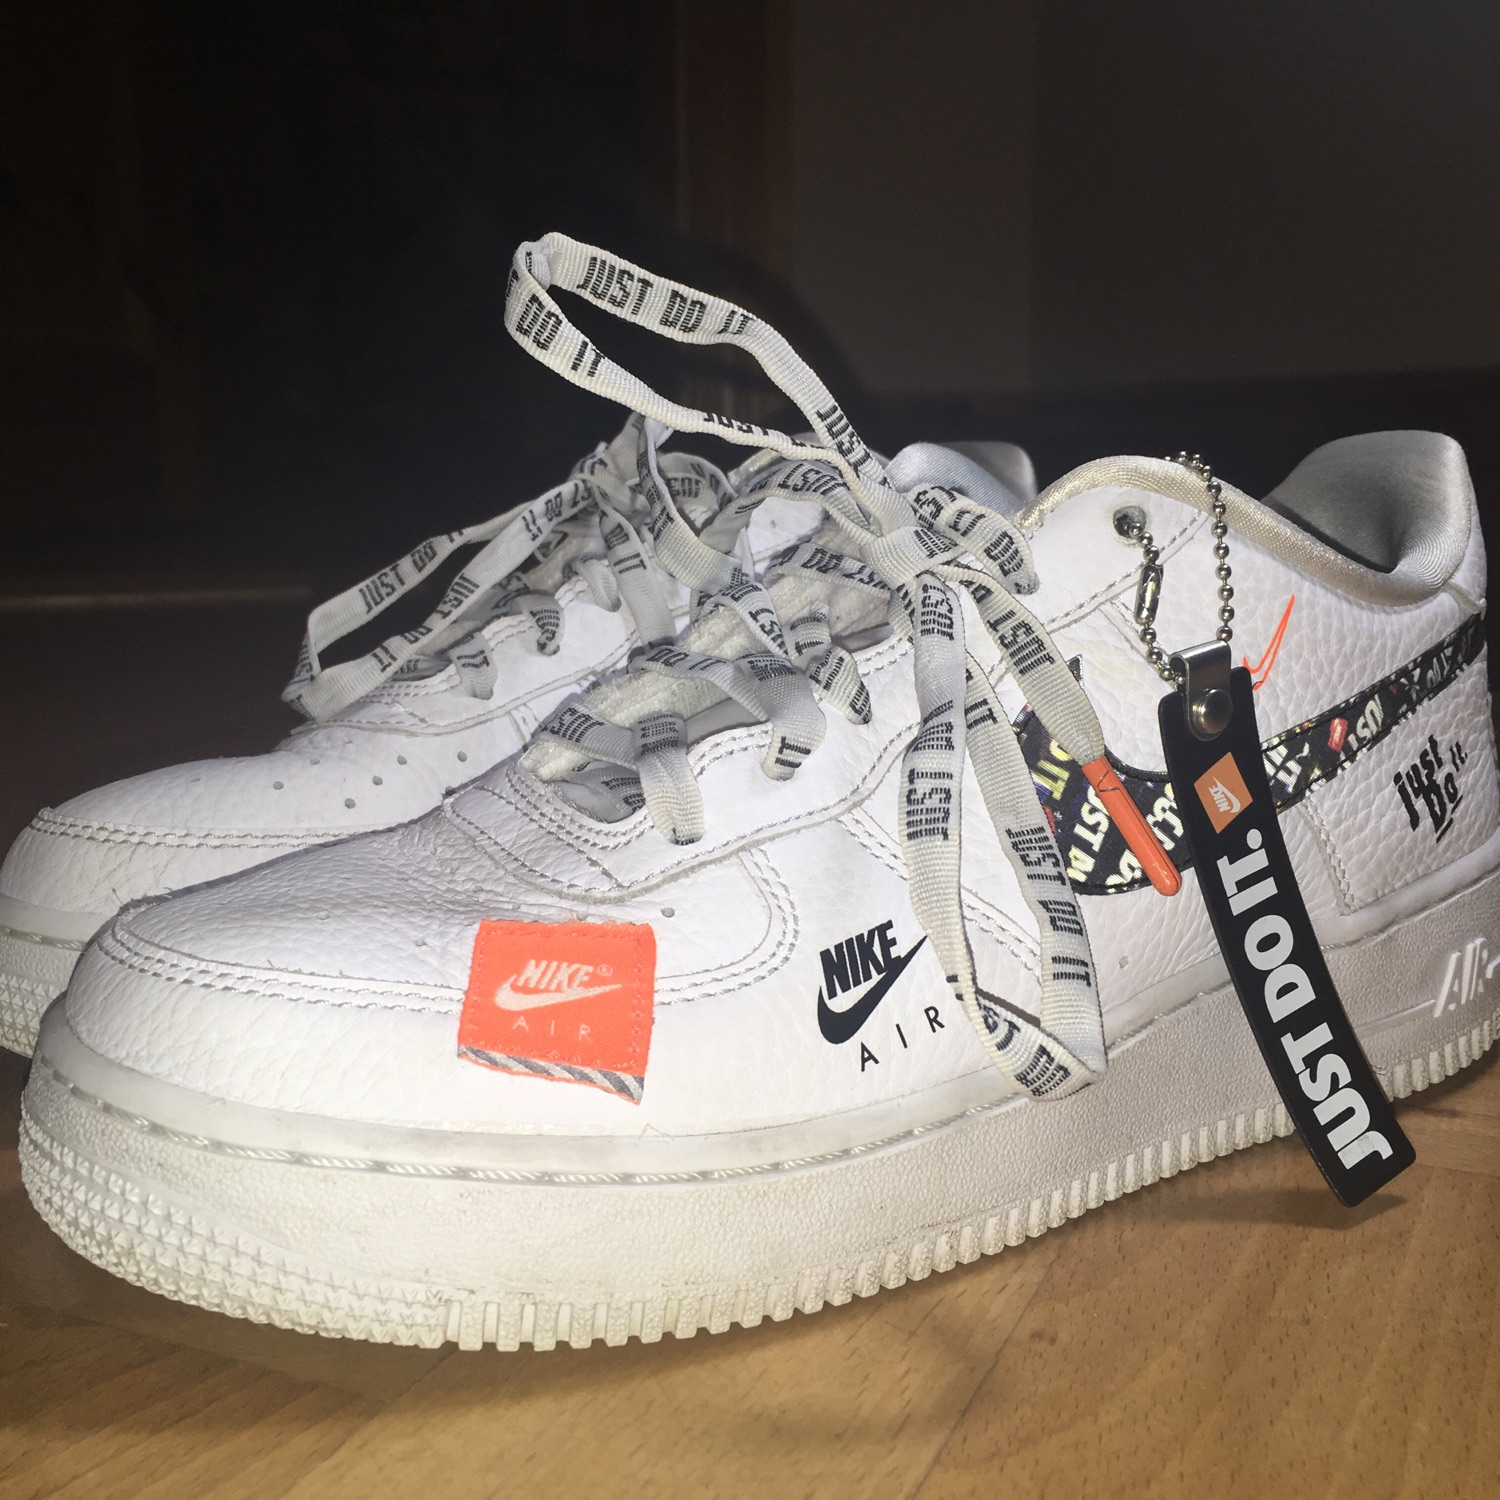 Nike air force 1 low limited edition NWT